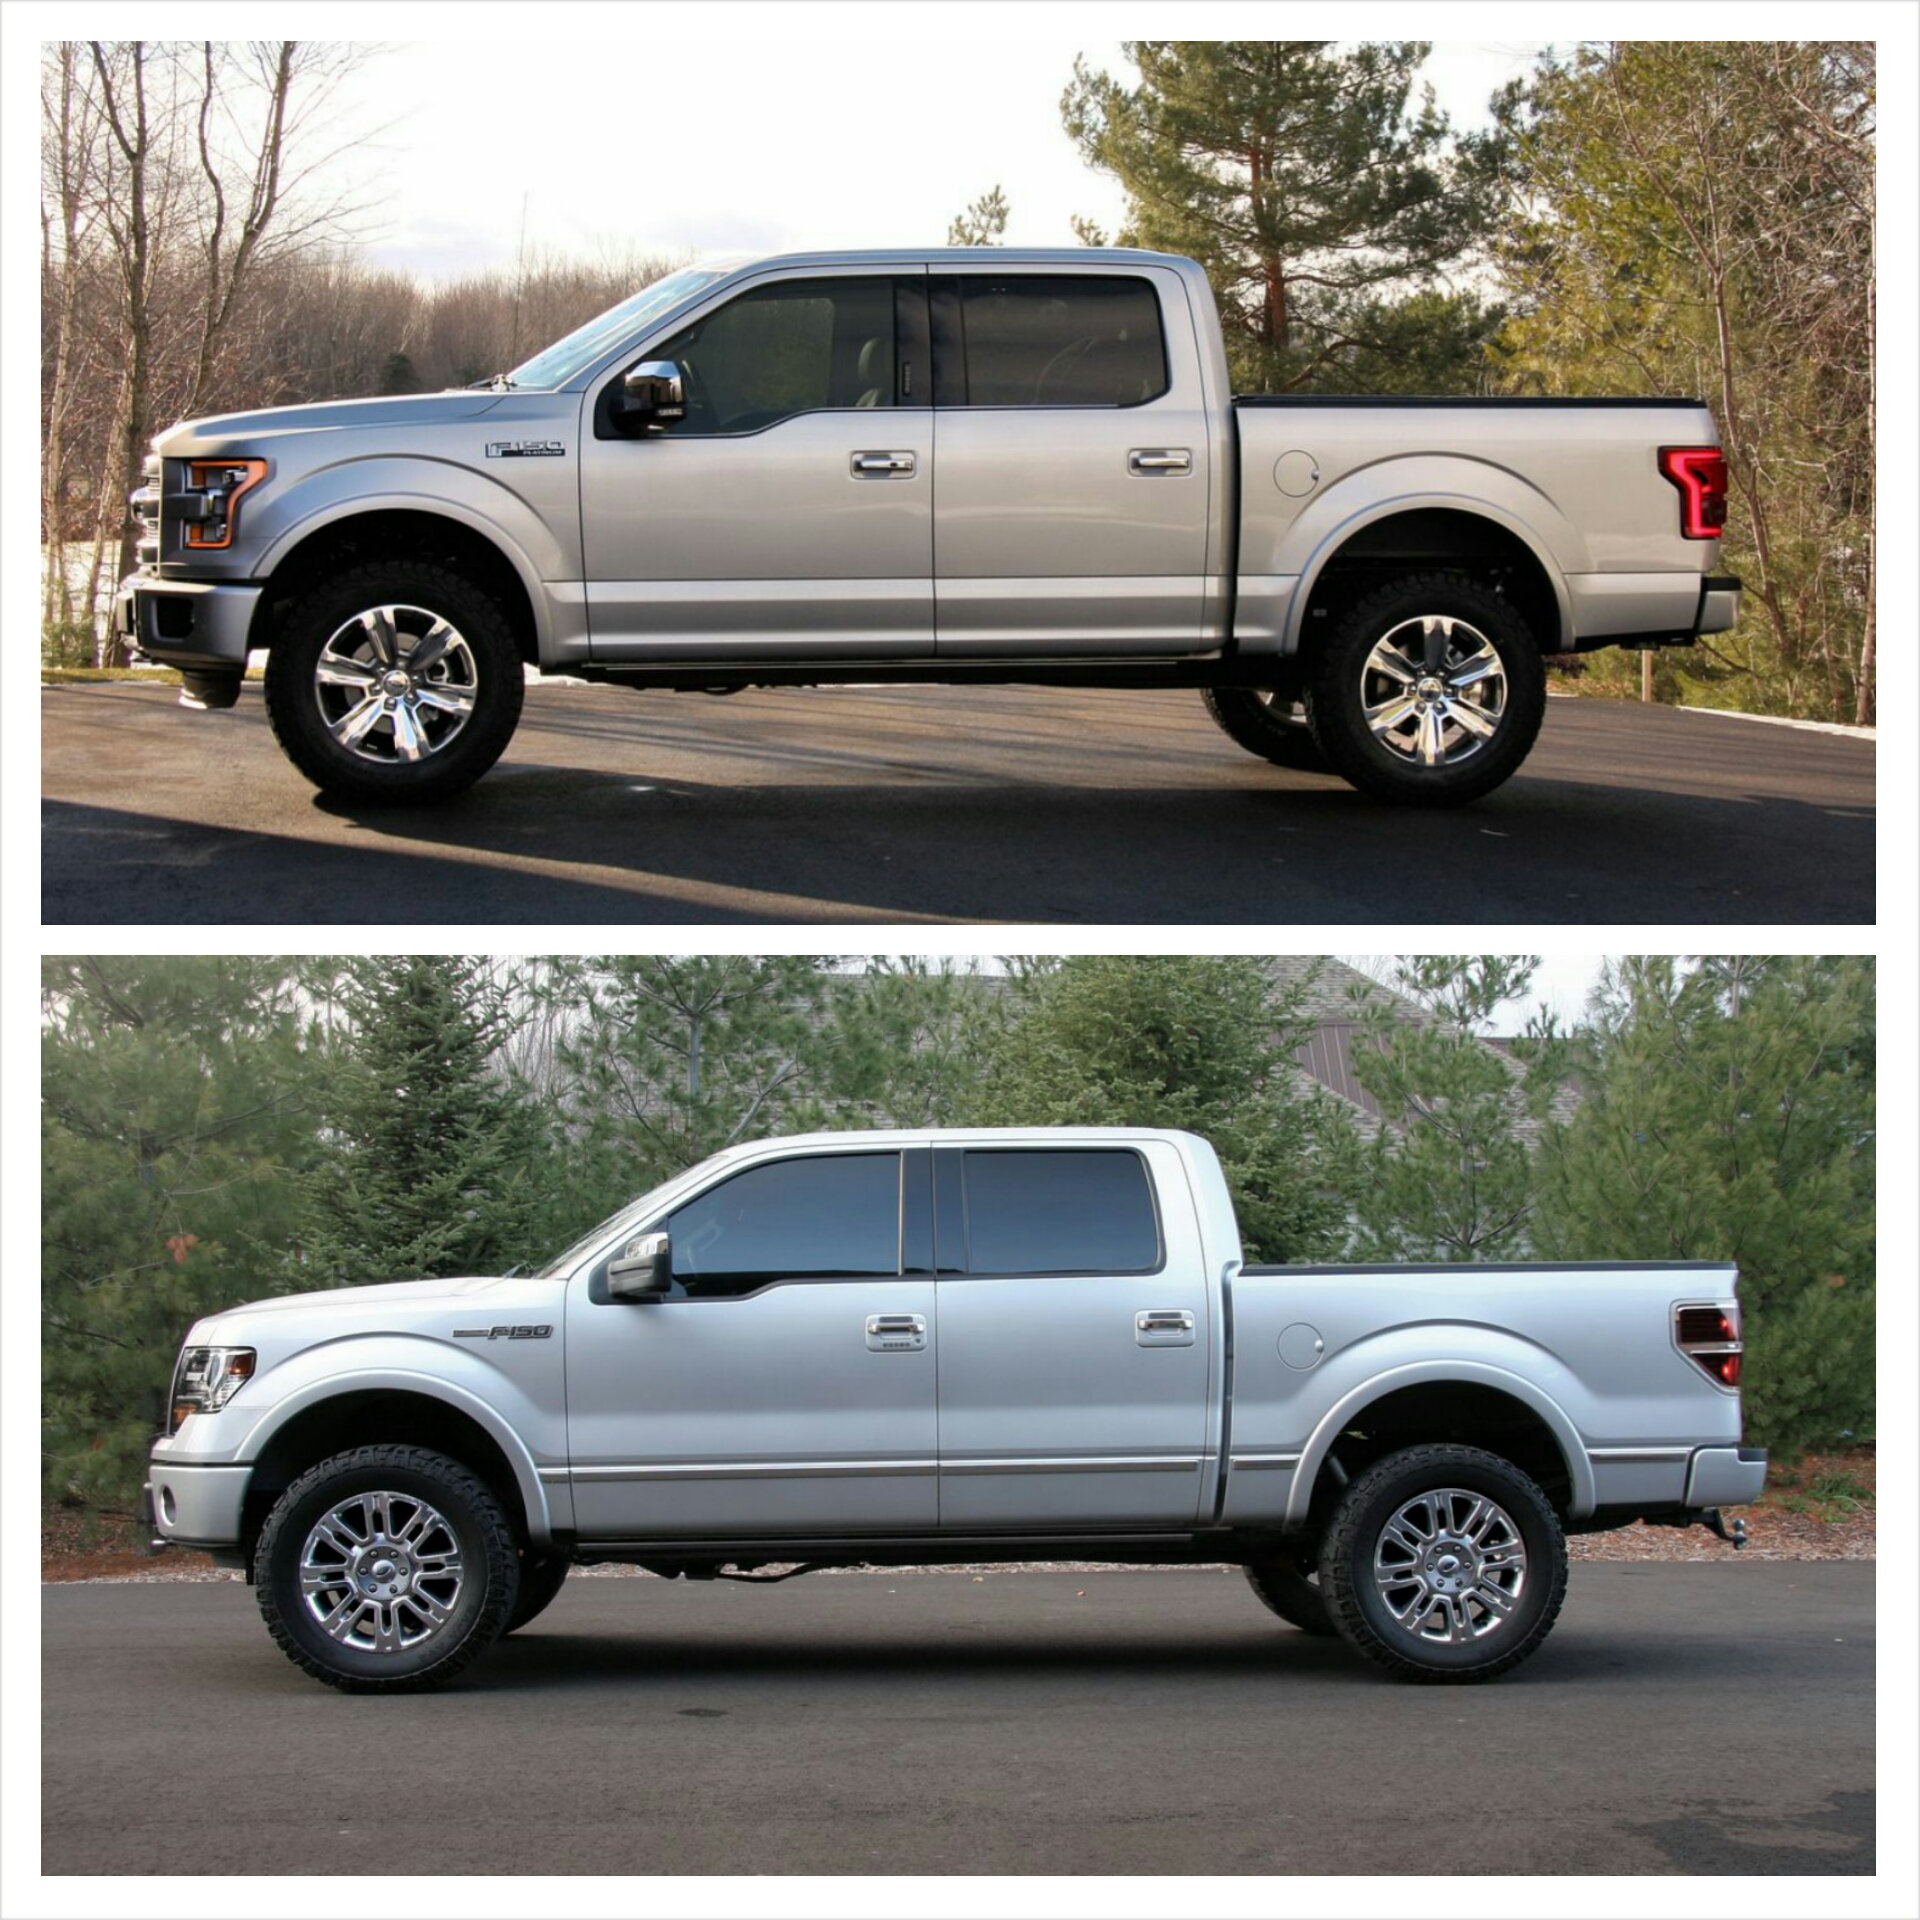 """Leveling Kit For Ford F150: 2015 F150 Platinum With 2"""" Leveling Kit, 3"""" Rear Block"""